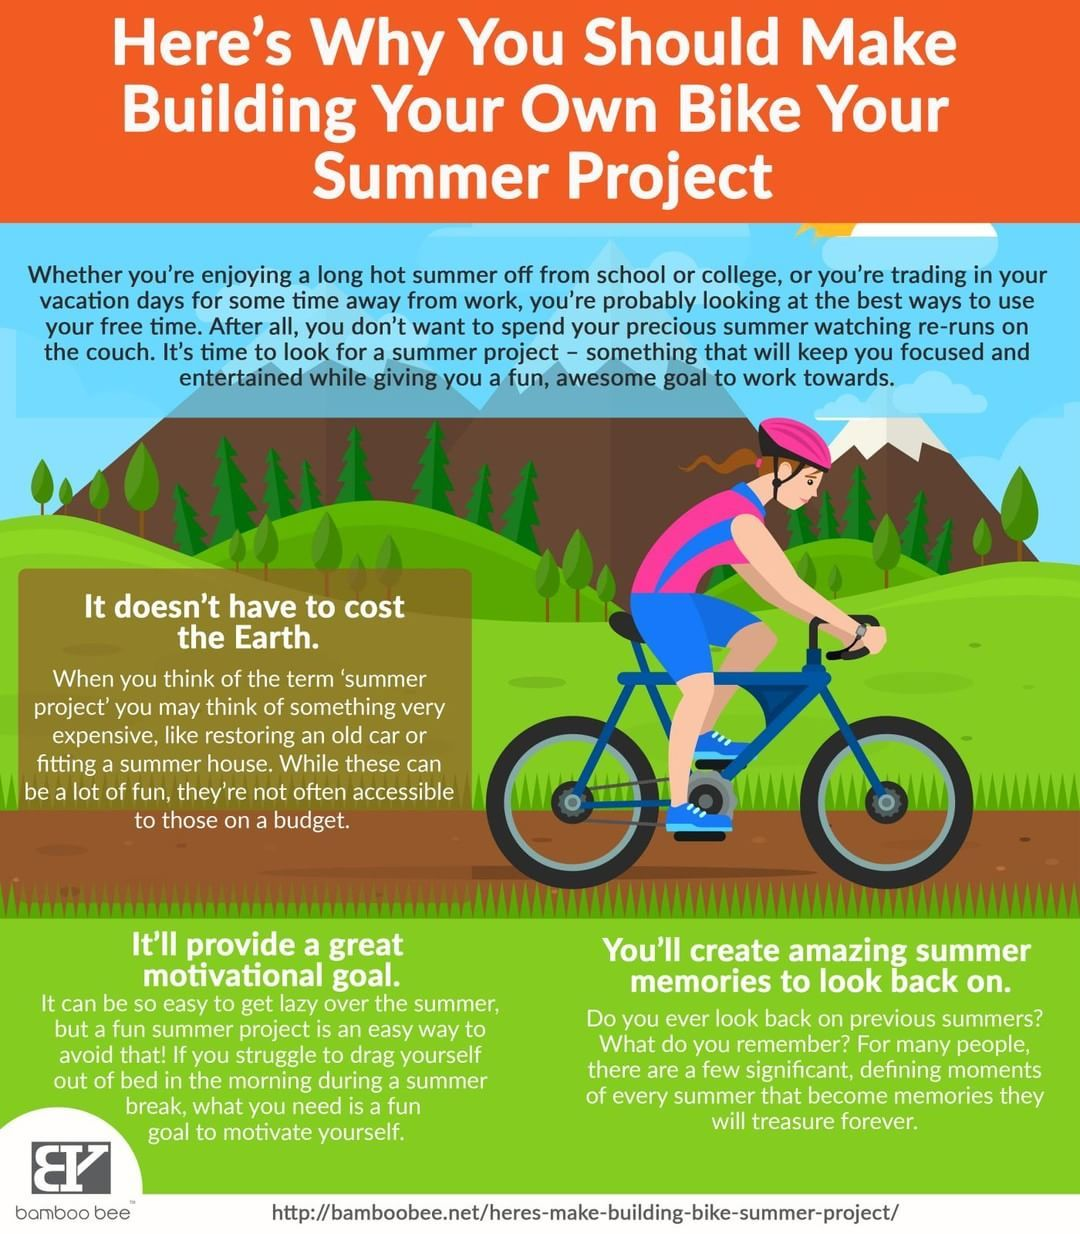 Why You Should Build Your Own Bike In Your Summer Project